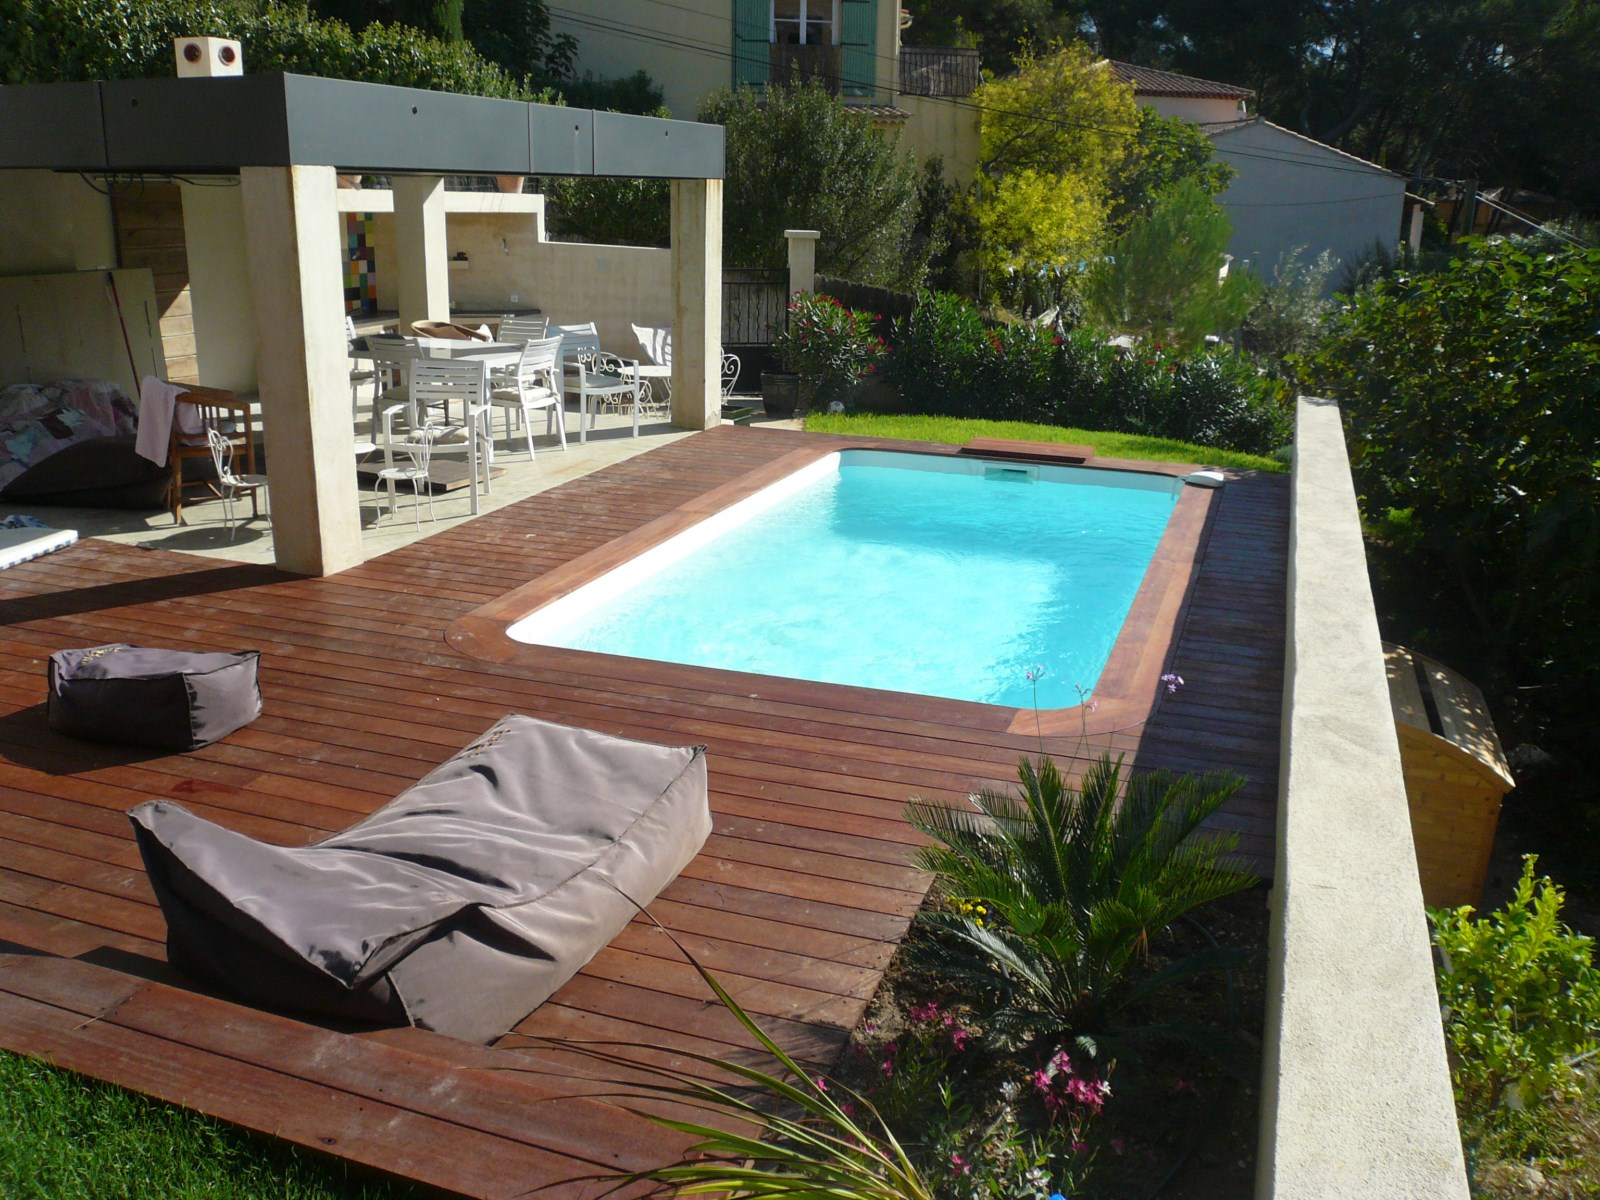 piscine rectangulaire avec plage em89 jornalagora. Black Bedroom Furniture Sets. Home Design Ideas